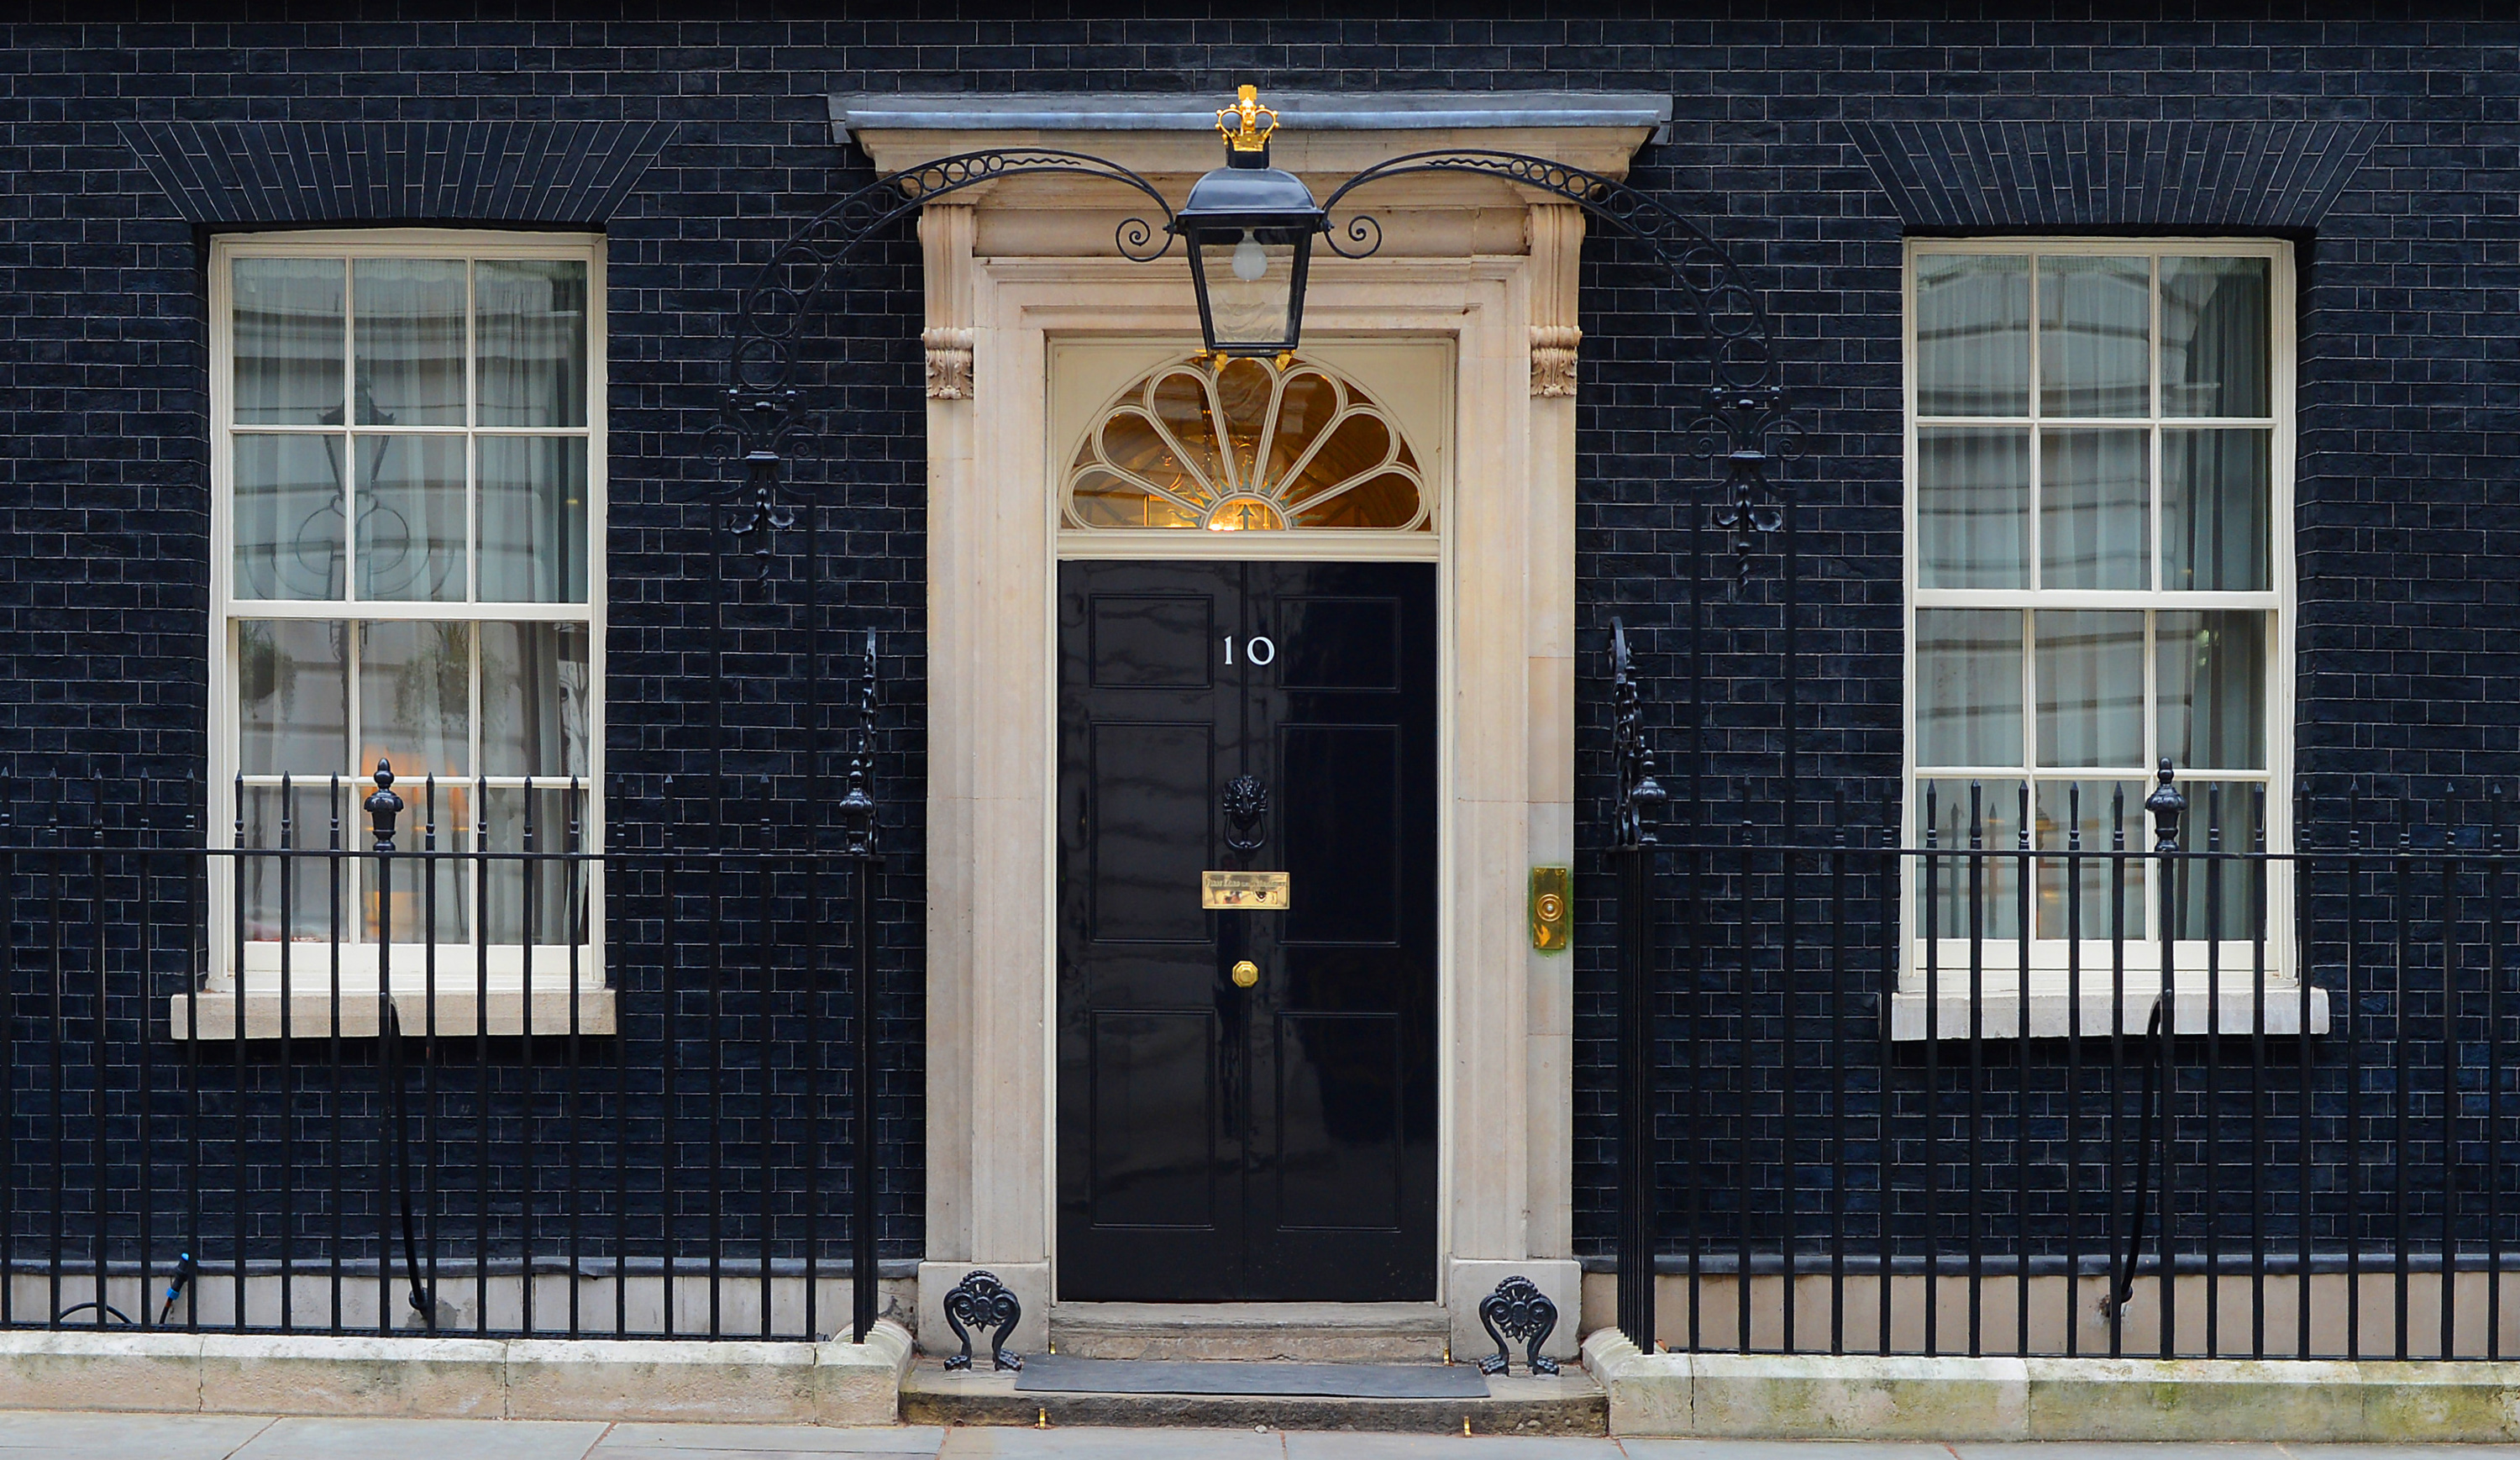 List Of Residents Of 10 Downing Street Wikipedia